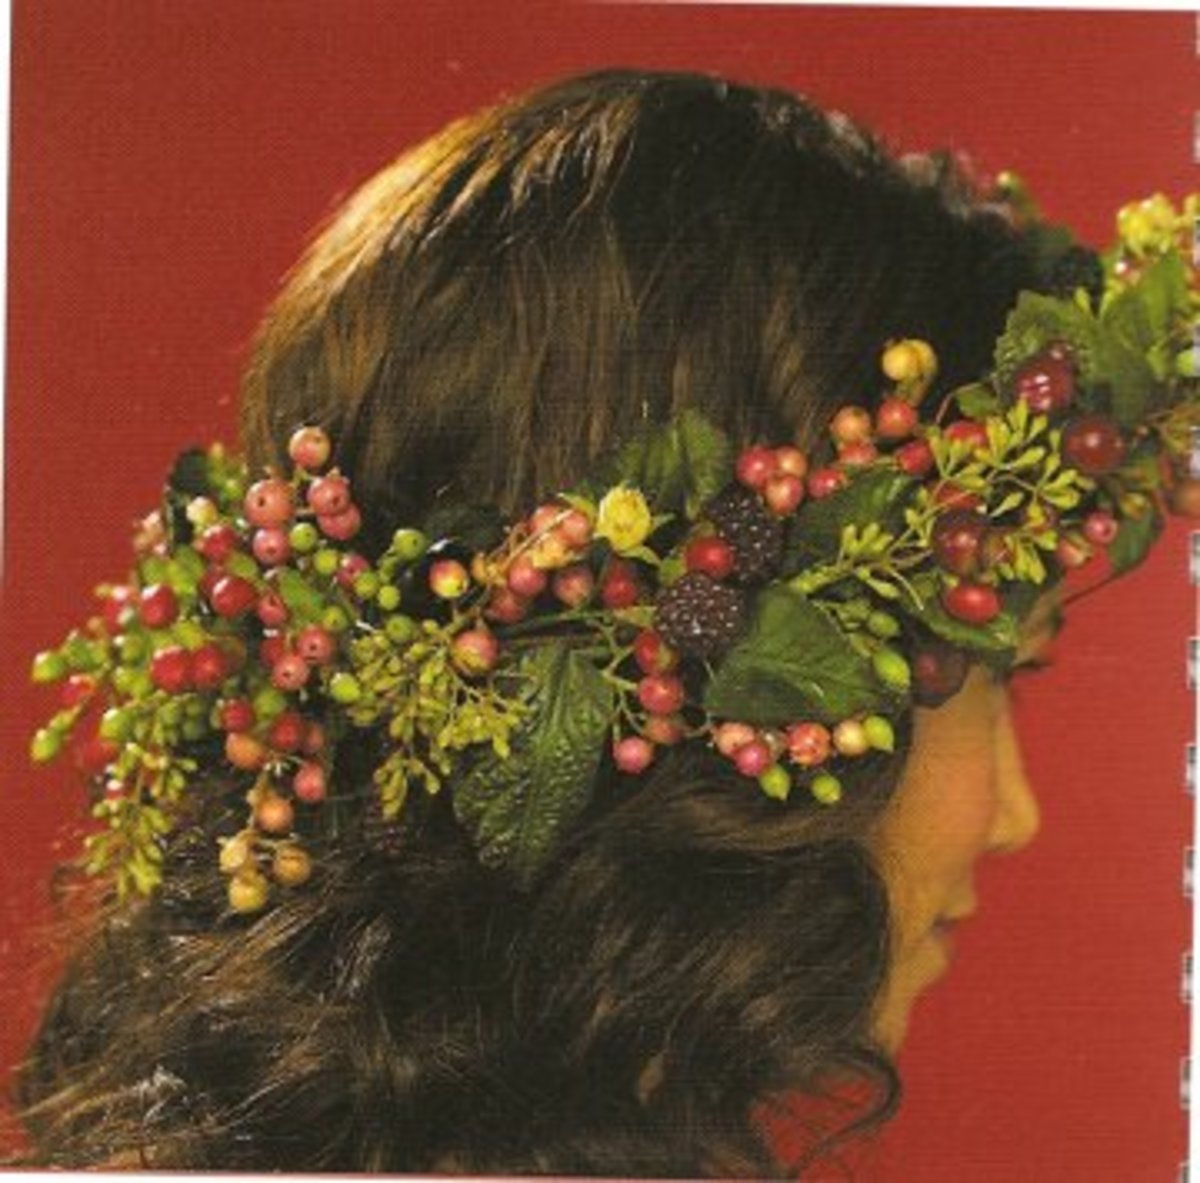 Floral Wreath of fresh flowers and berries